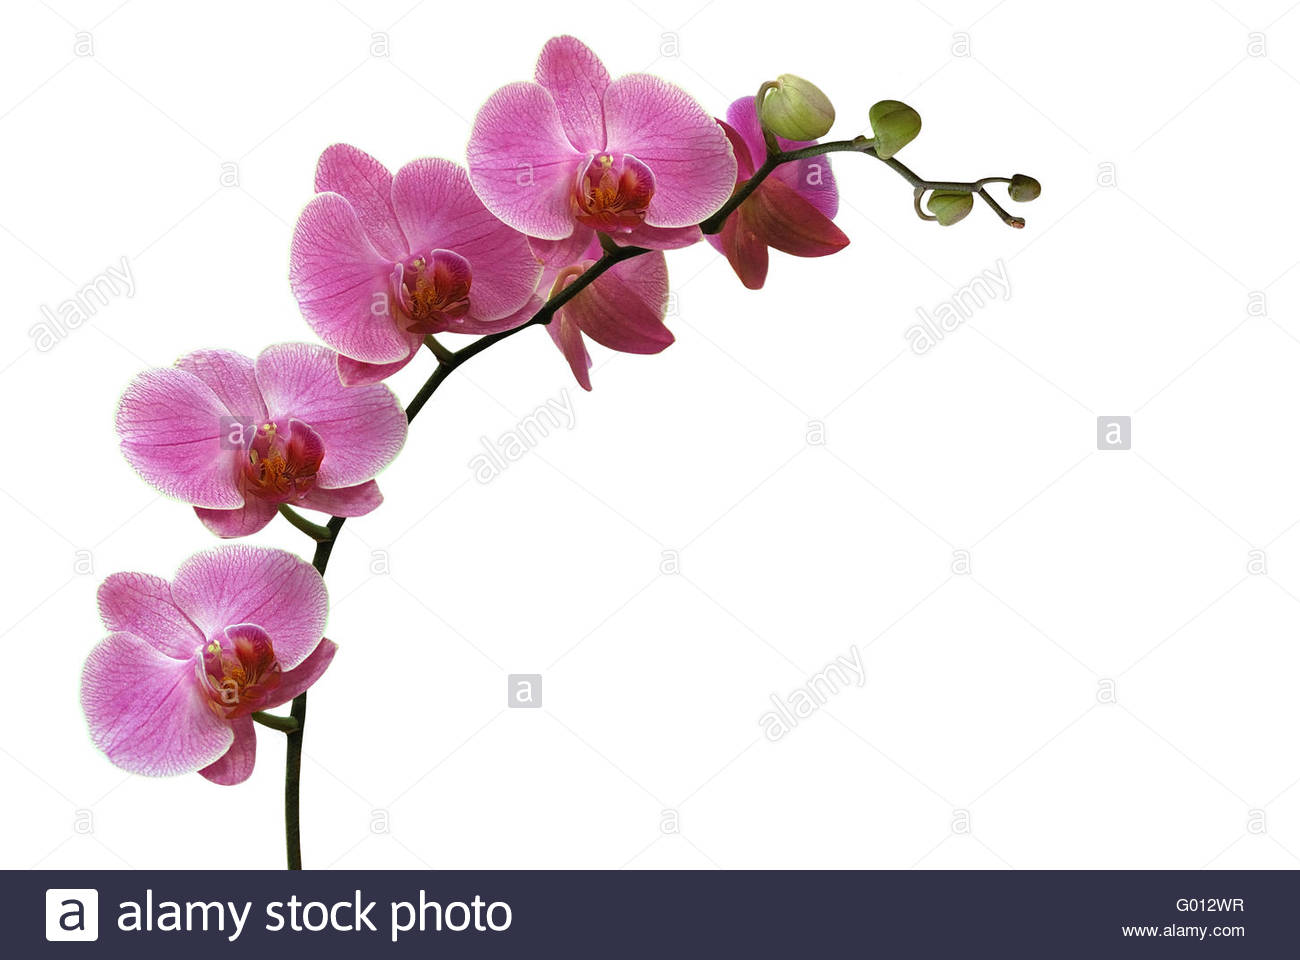 orchid isolated on white - Stock Image